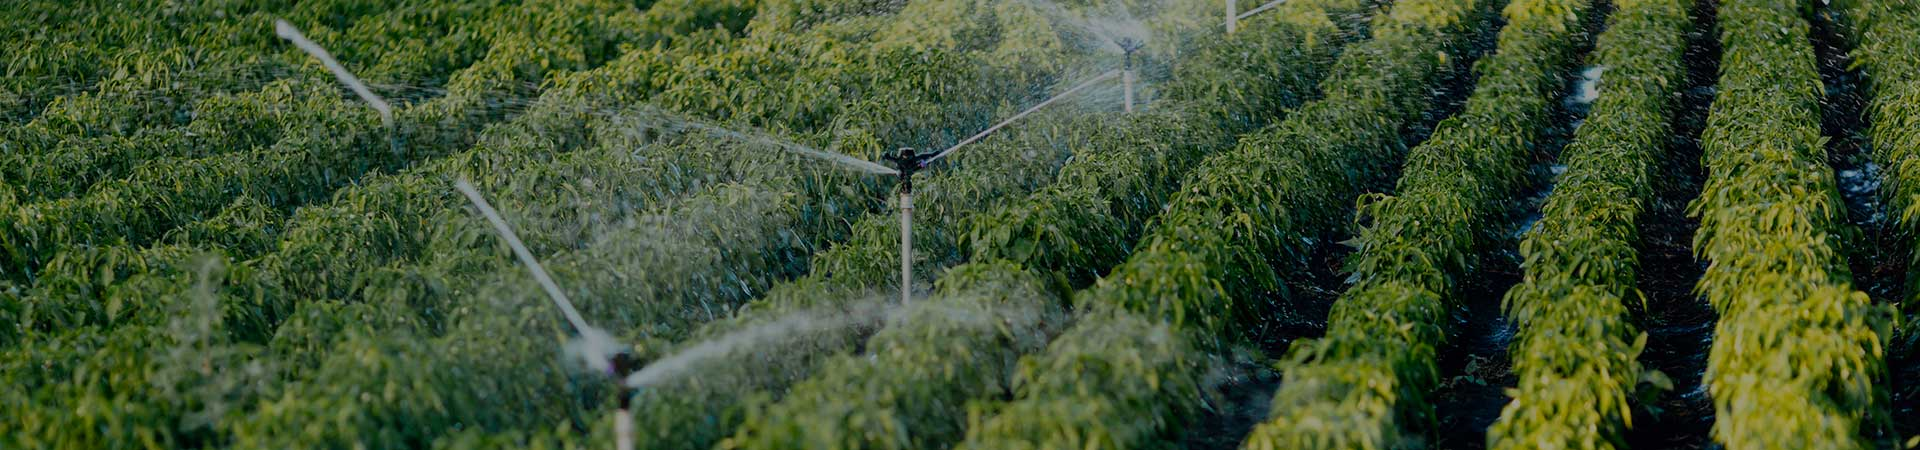 sprinklers watering fields